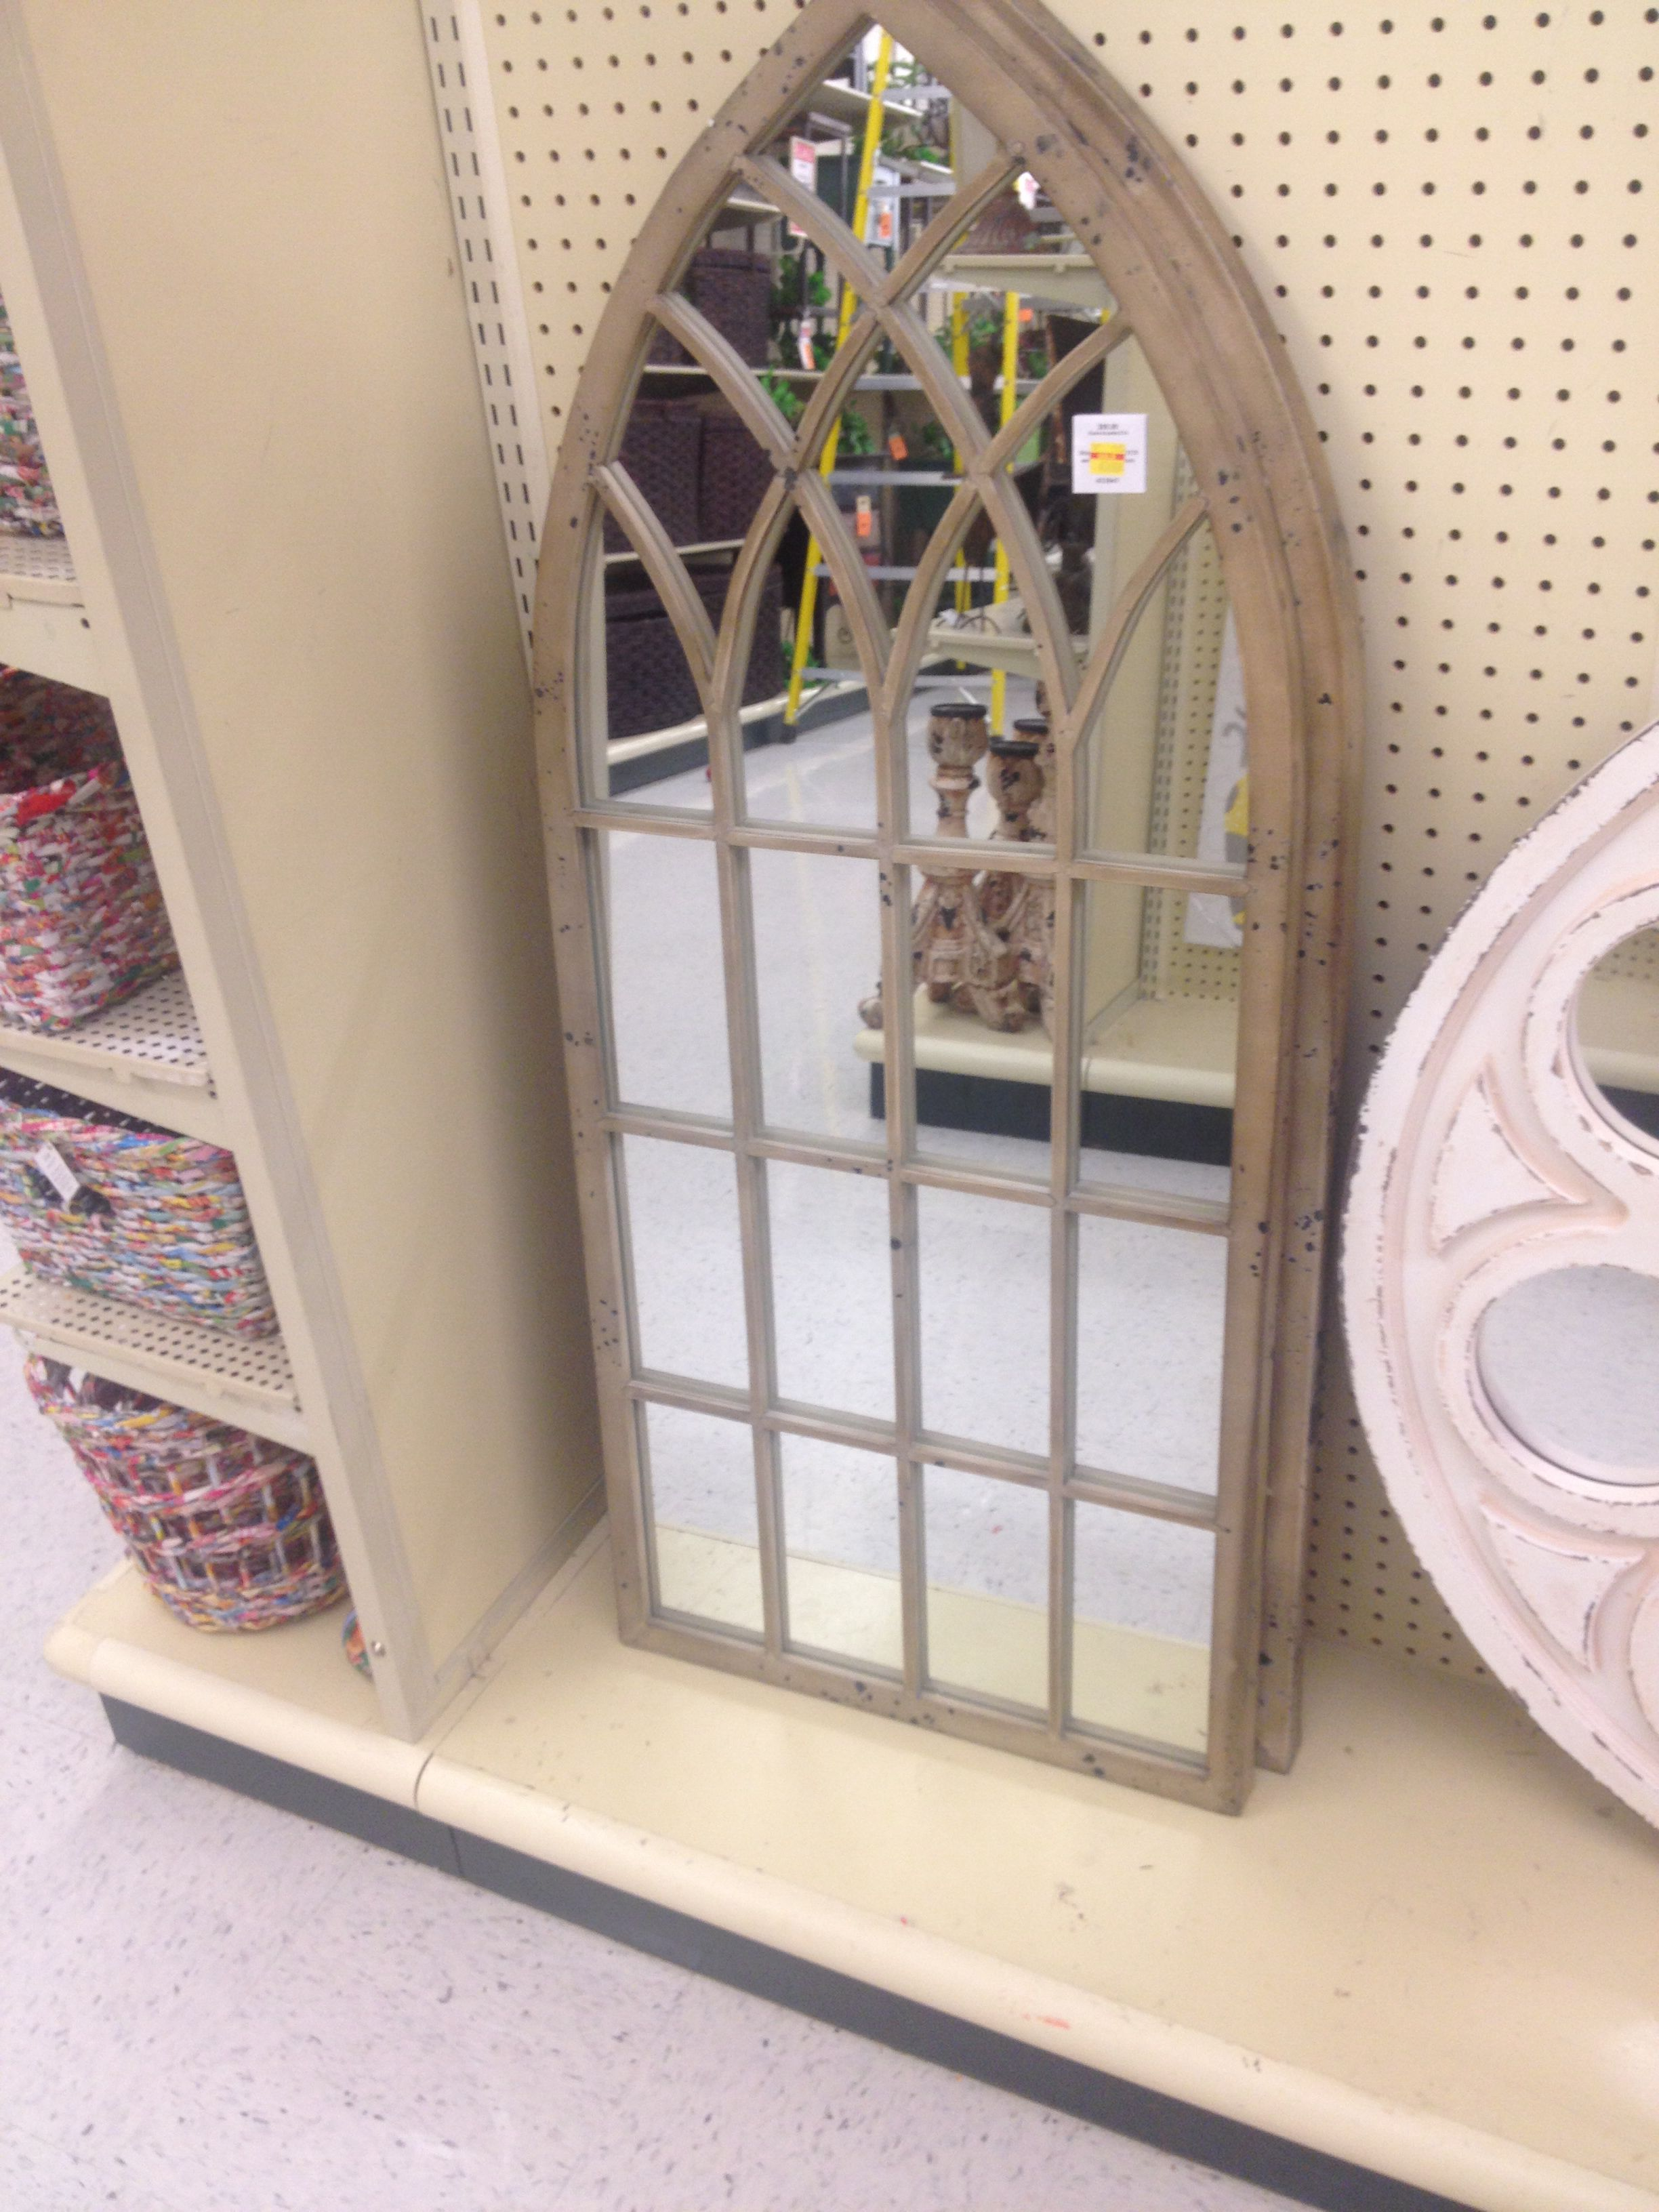 Antiqued Mirror Window Hobby Lobby Hobby Lobby Wall Decor Hobby Lobby Decor Hobby Lobby Mirrors